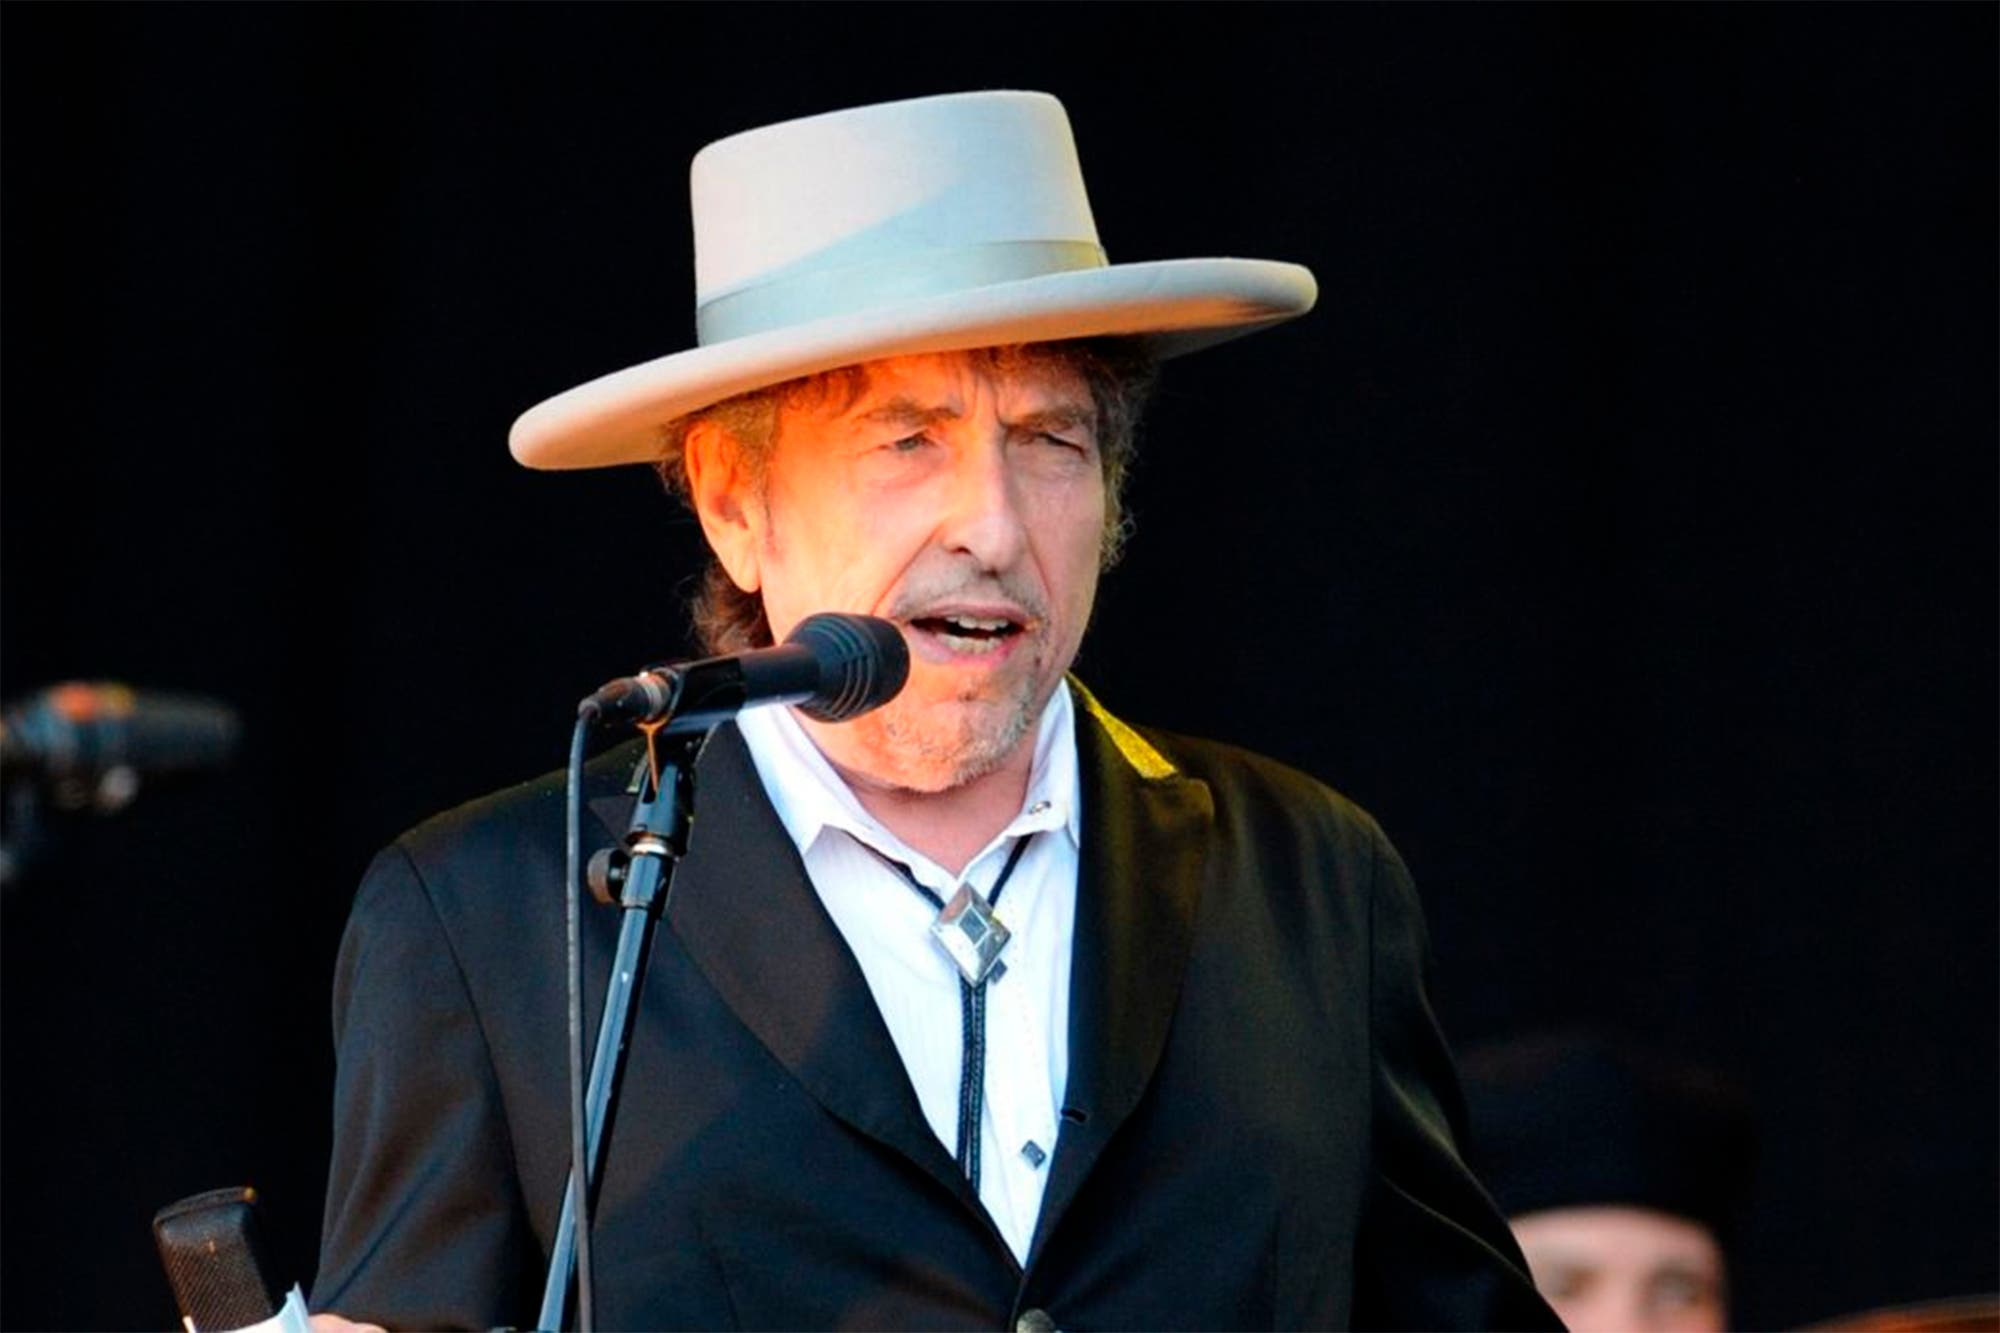 Bob Dylan vuelve con una obra maestra, Rough and Rowdy Ways